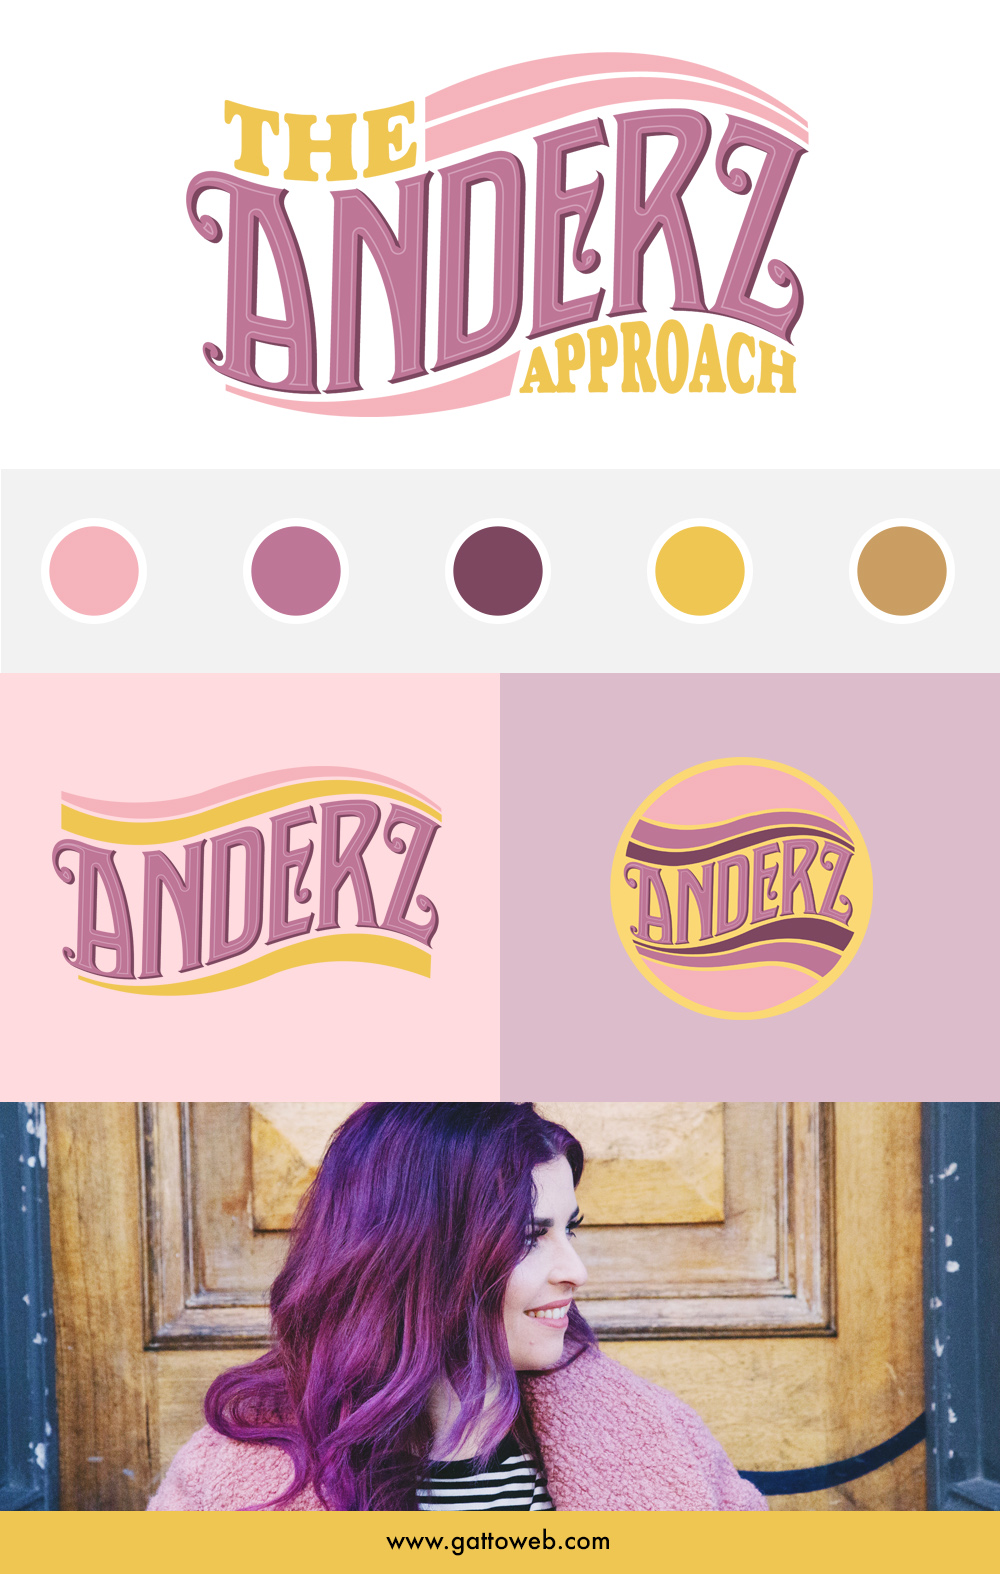 The-Anderz-Approach-Branding-Board.jpg